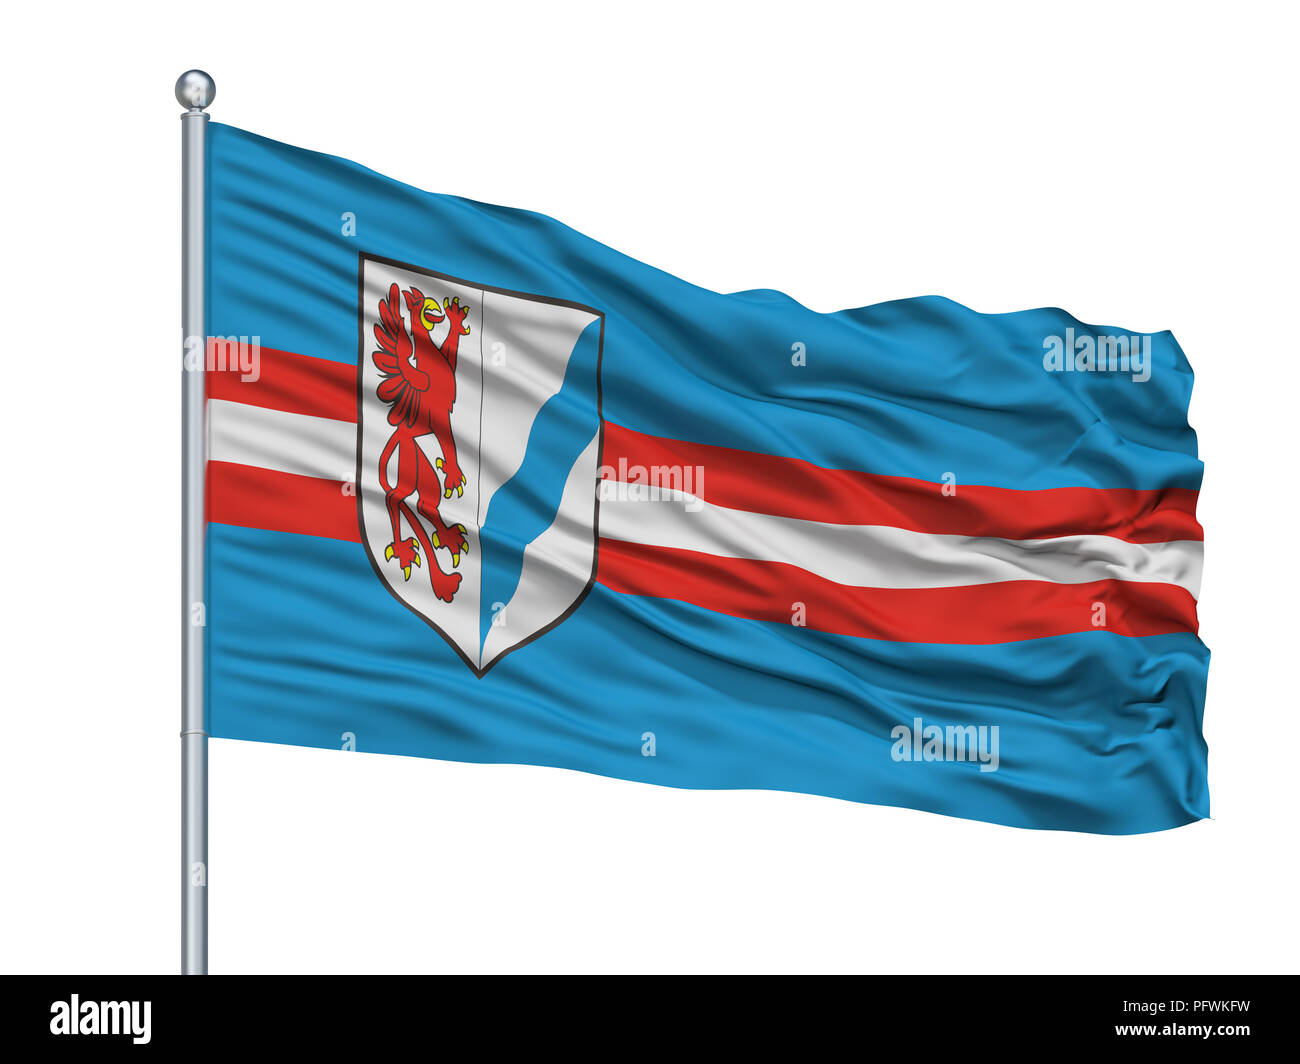 Rybnik City Flag On Flagpole, Poland, Isolated On White Background - Stock Image